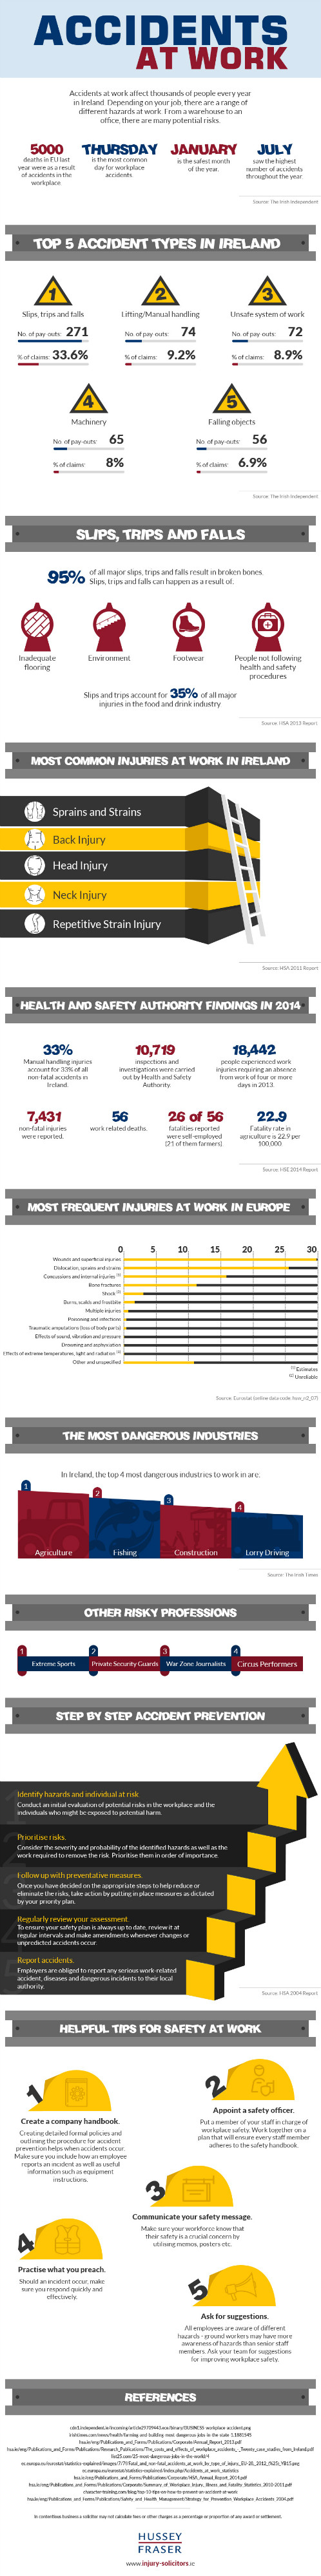 Accidents At Work [Infographic]